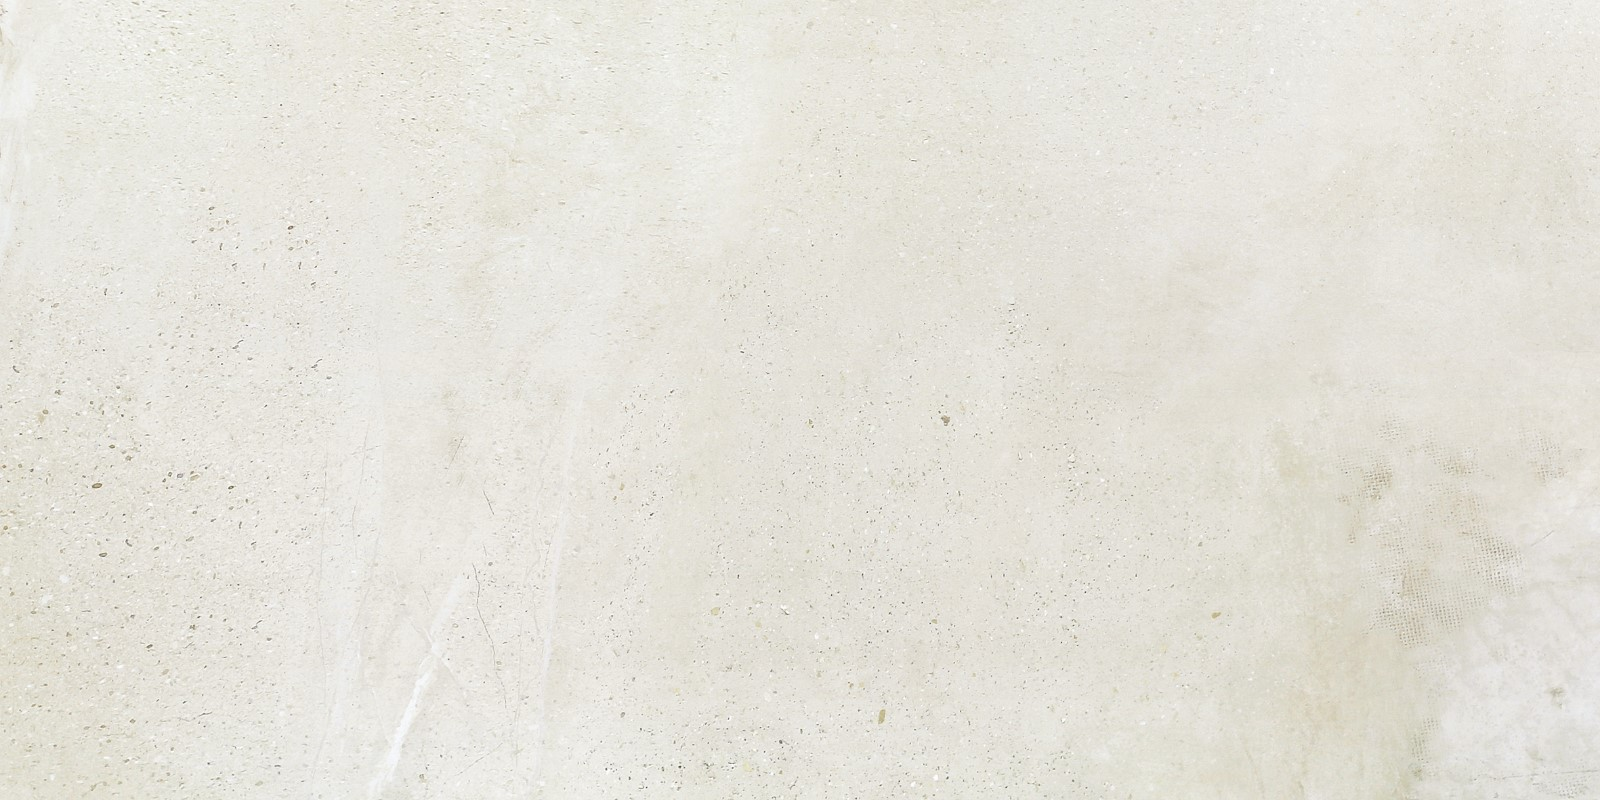 Overland ceramics skid bluestone tile flooring online for bathroom-5